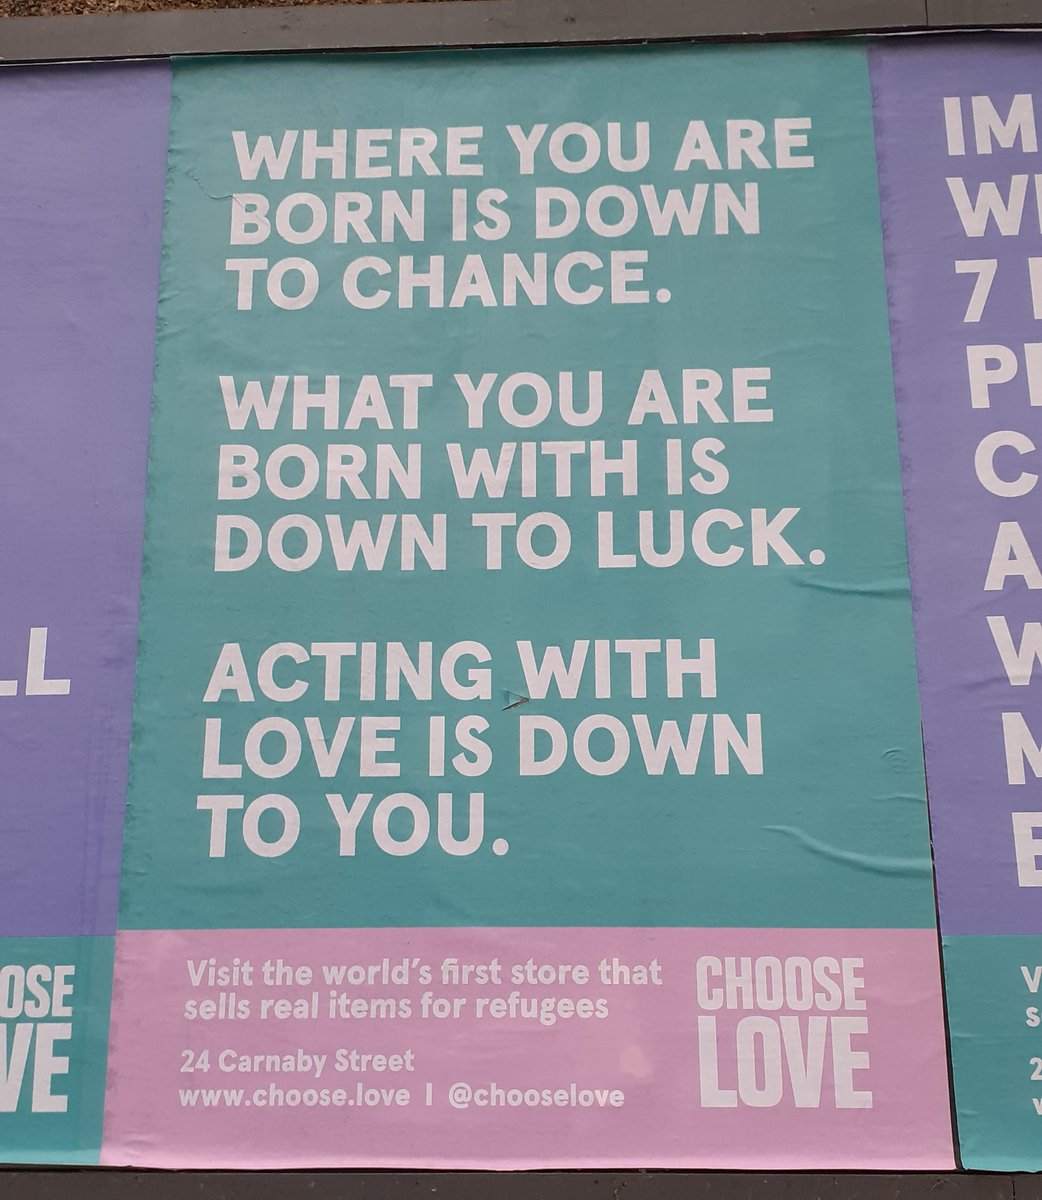 Replying to @_joejeffries: Love is a poster that makes you stop and read